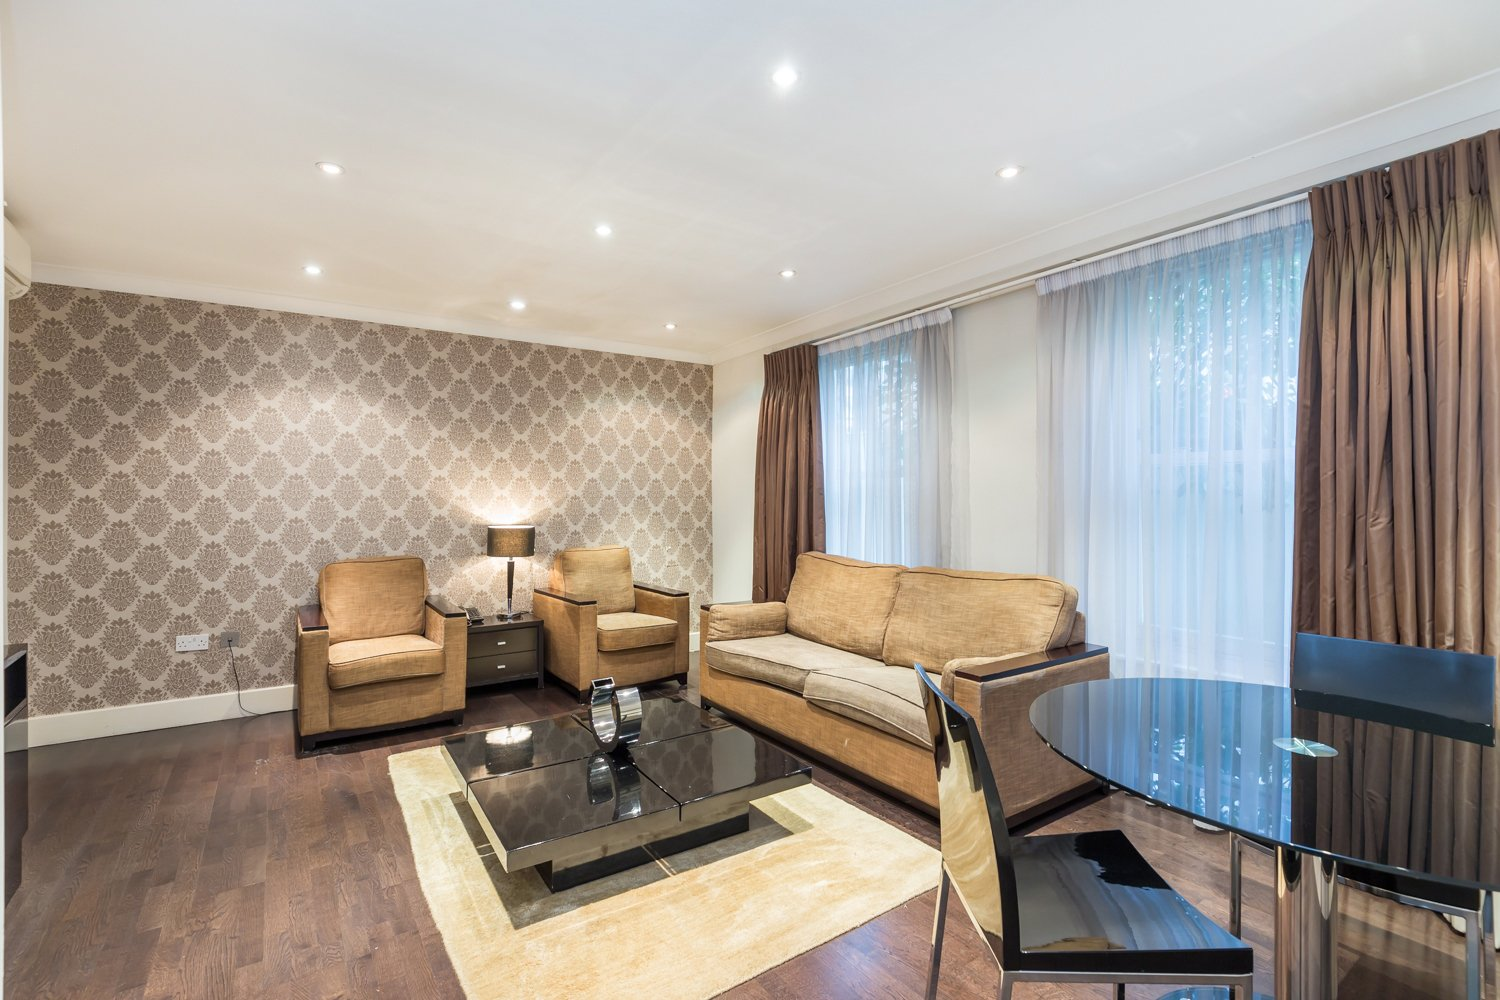 Serviced-Accommodation-Paddington-in-Central-London-|-5-Star-Short-Let-Apartments-near-Hyde-Park-|-Lift,-Aircon,-24h-Reception-|-Urban-Stay